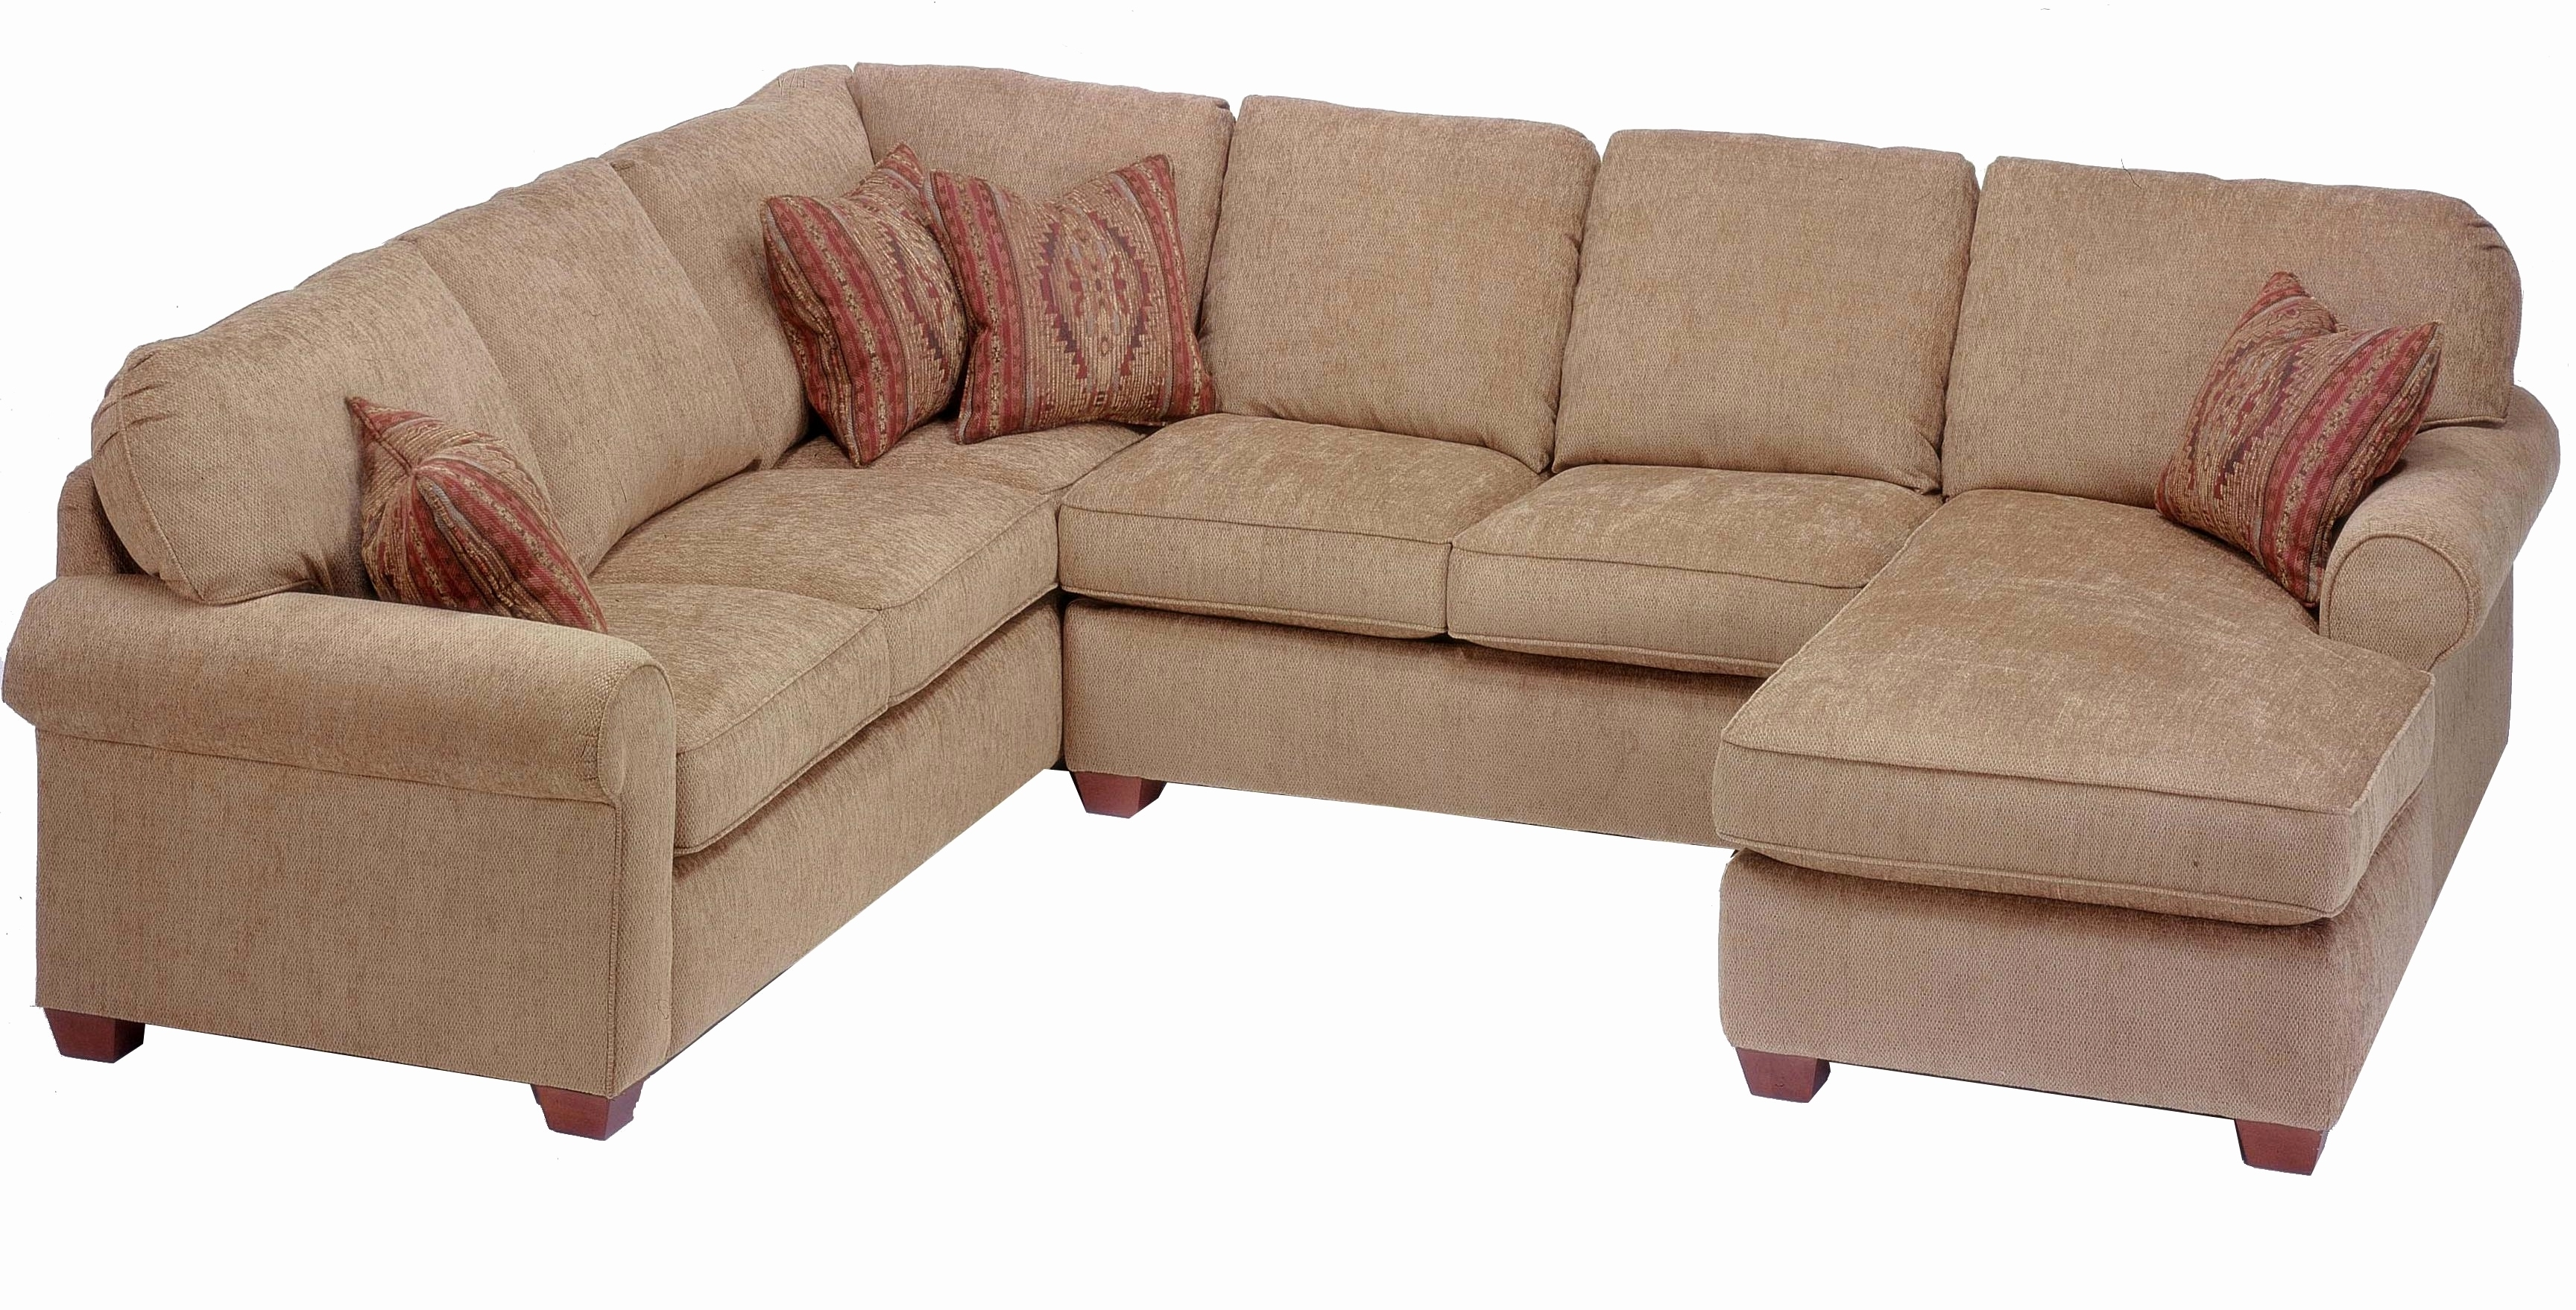 Most Recent Fresh High Point Sofa 2018 – Couches And Sofas Ideas Inside Jacksonville Nc Sectional Sofas (View 10 of 15)